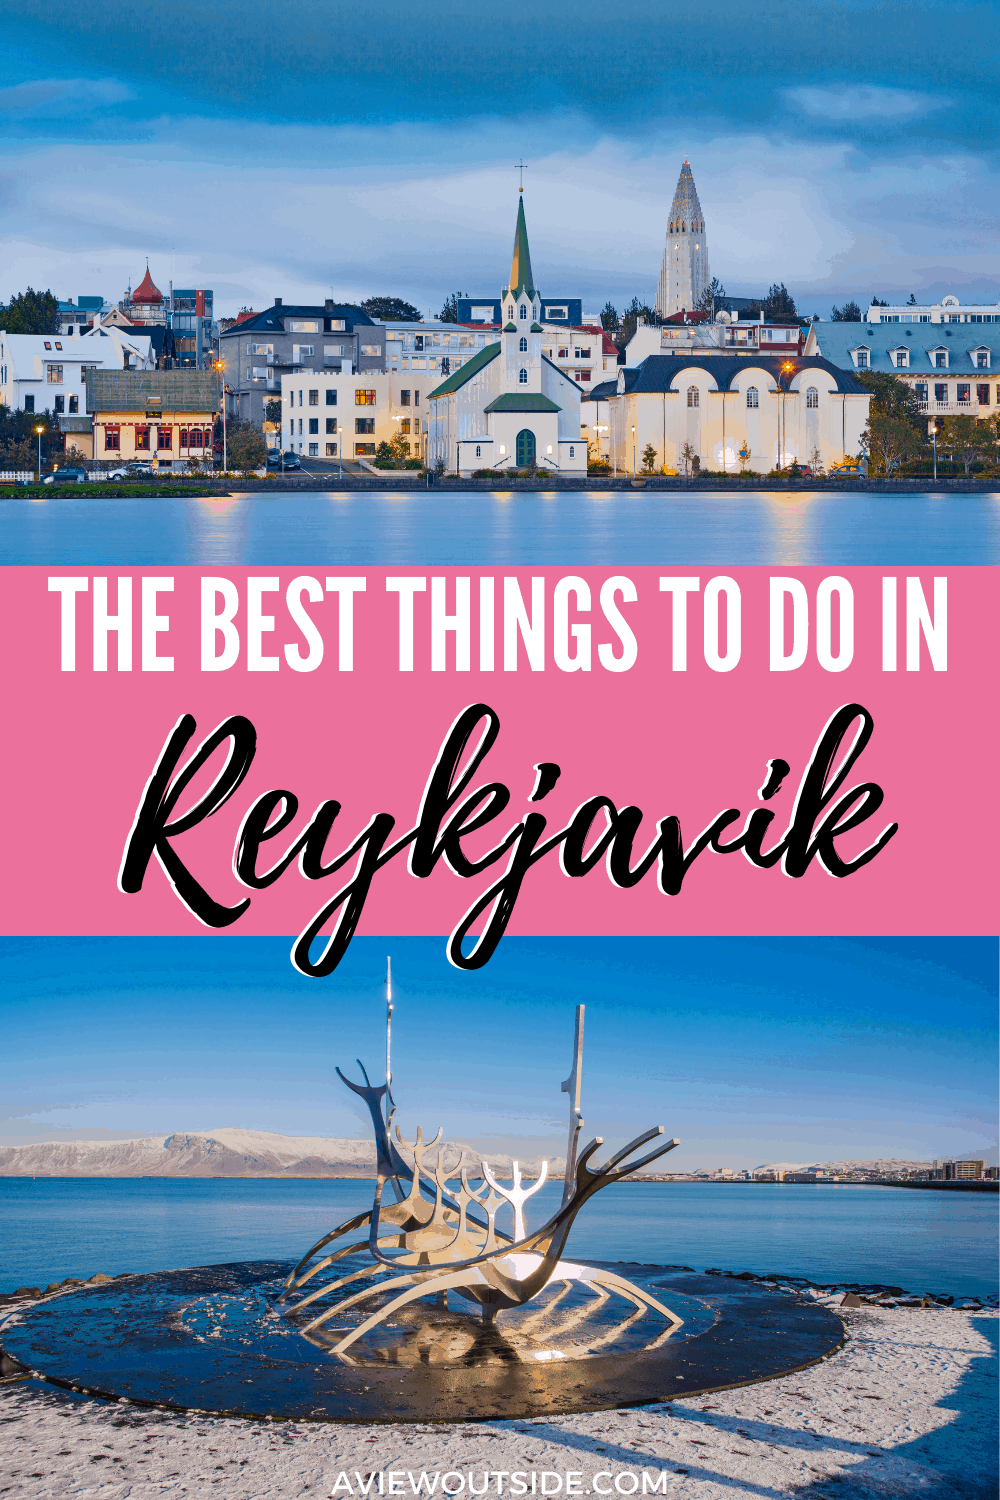 The Best Things to do in Reykjavik